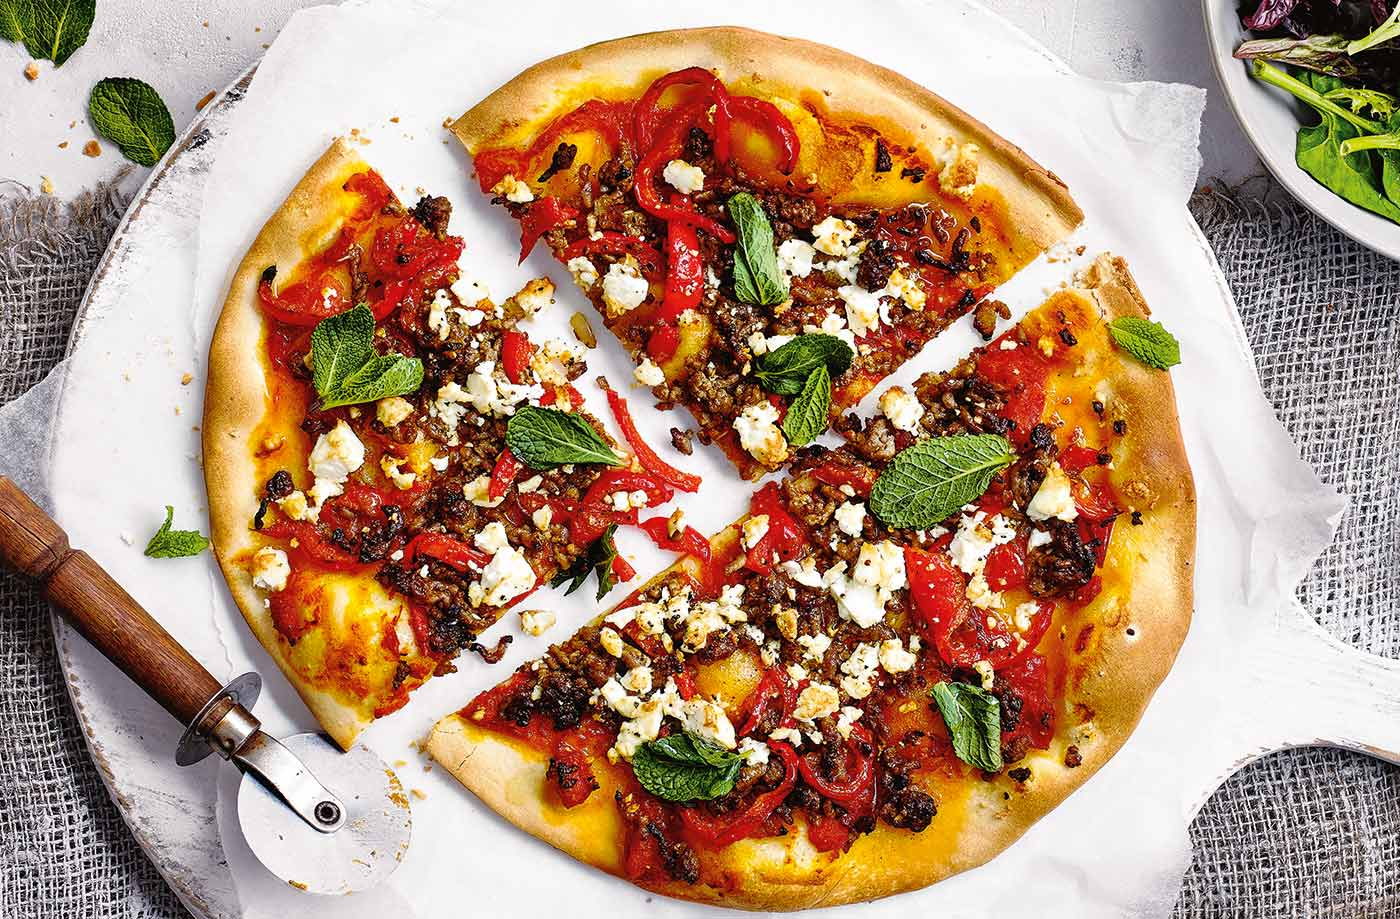 Speedy Turkish pizzas recipe